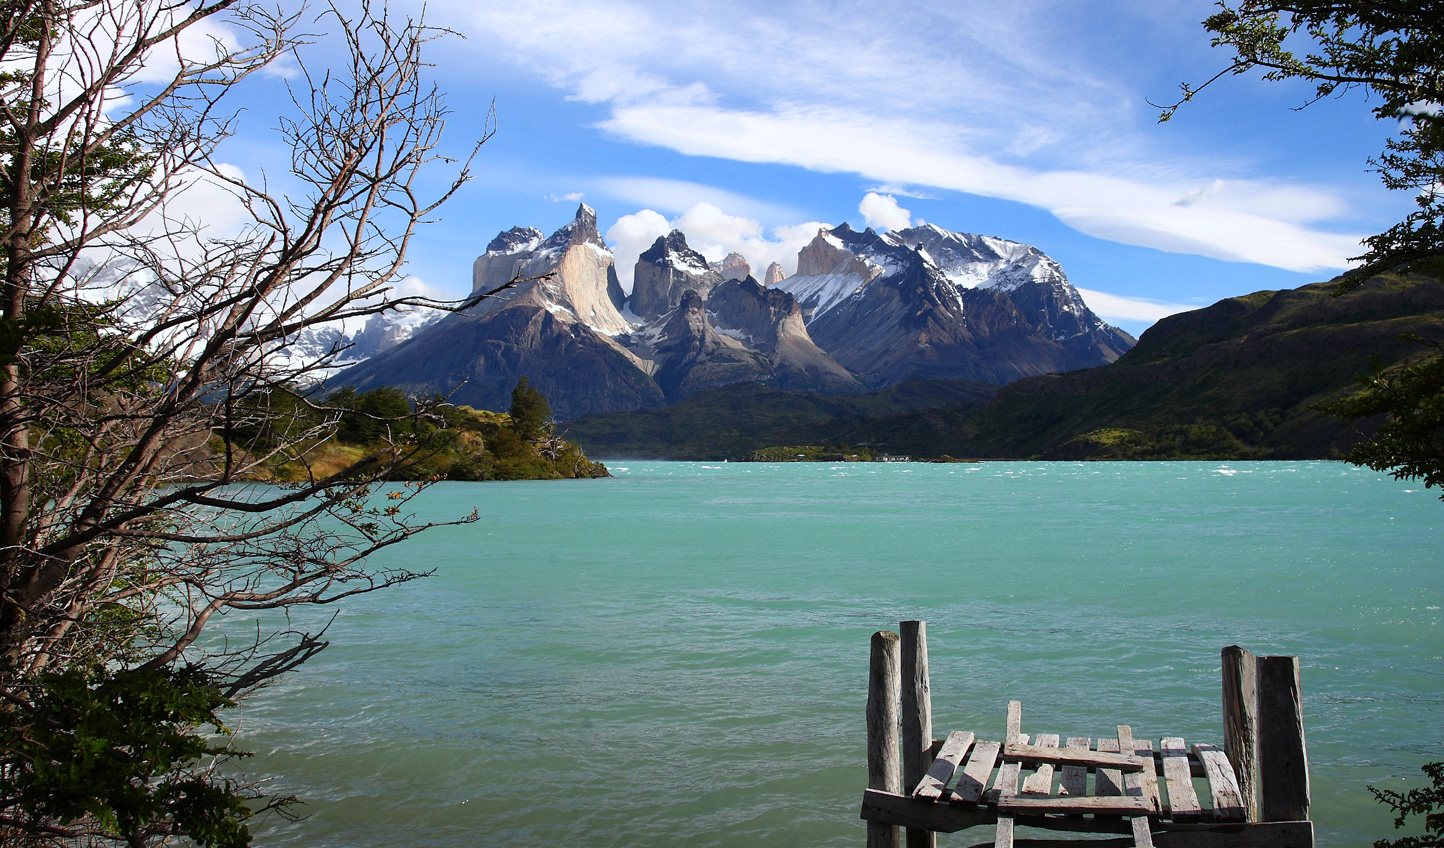 Set your sights on Torres del Paine